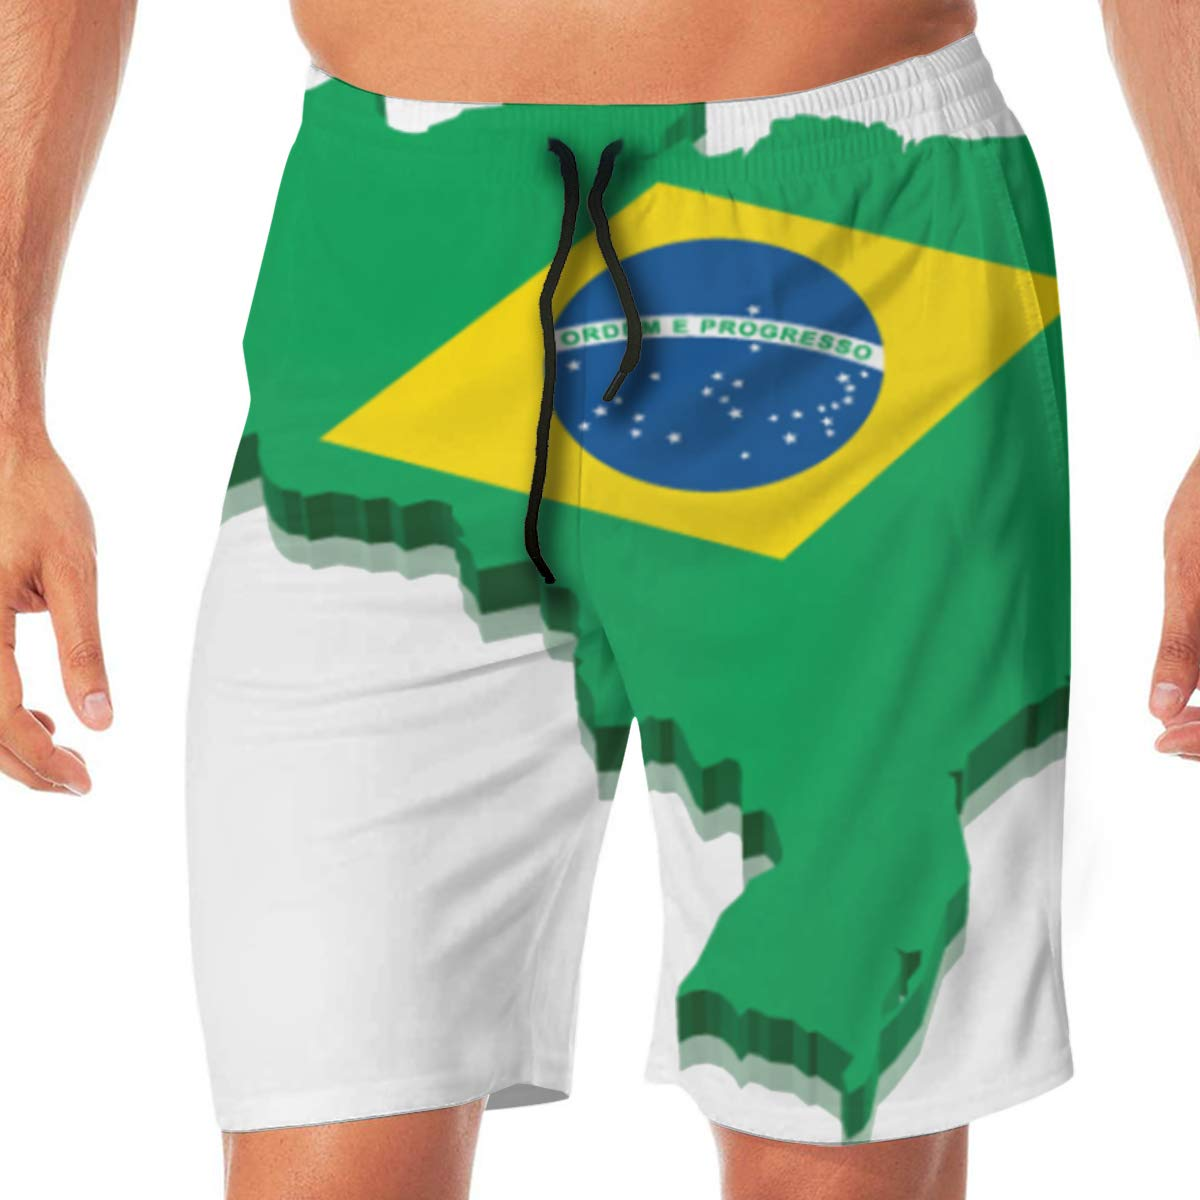 Woxianghe Mens Active Athletic Performance Shorts with Pockets Brazil